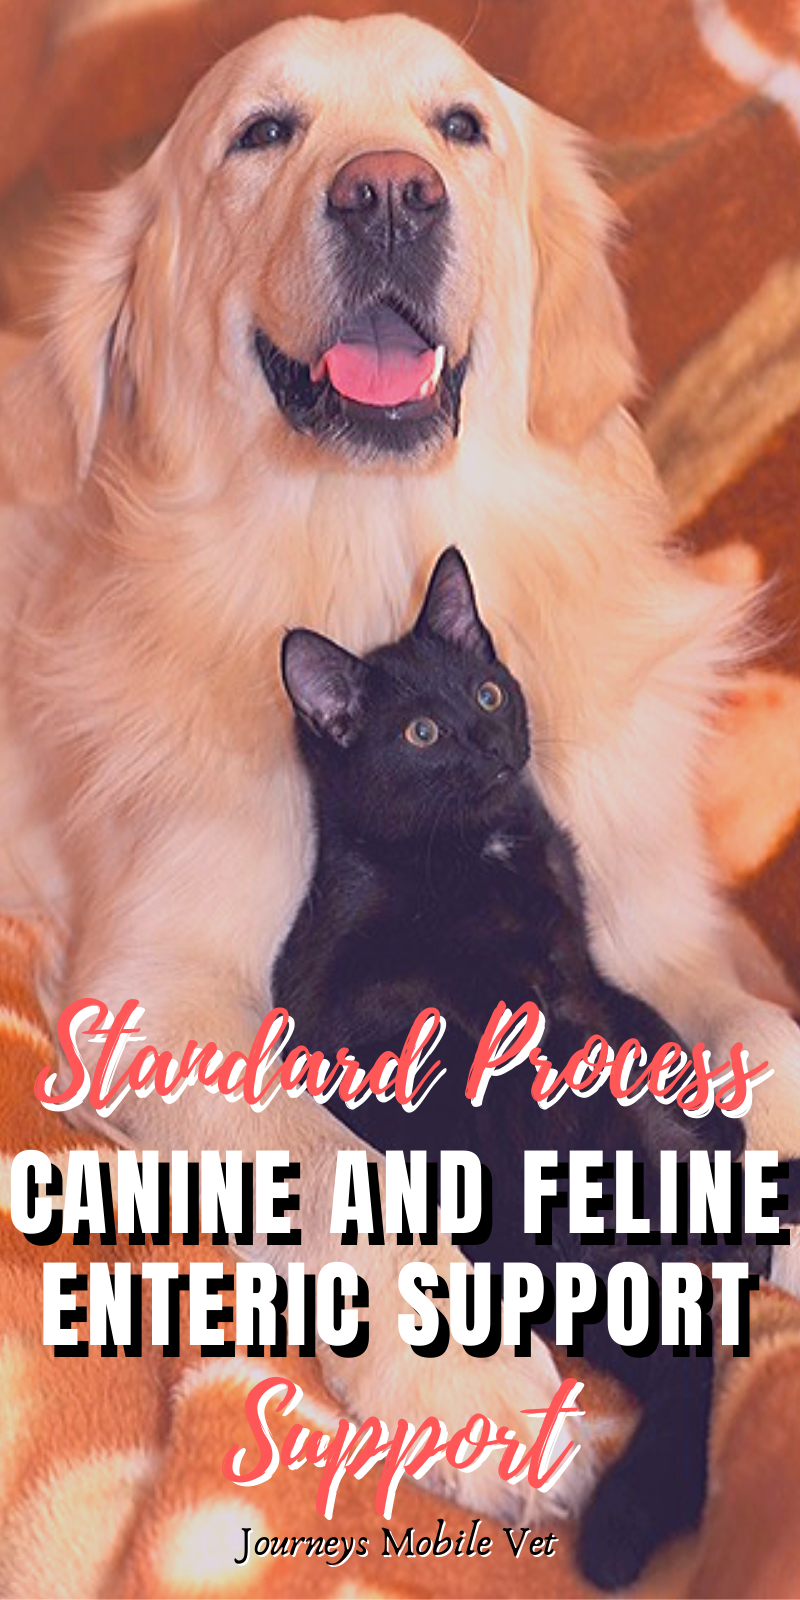 Standard Process Canine and Feline Enteric Support: A Holistic Veterinarian's Therapeutic Review #dog #cat #pet #animals #feline #canine